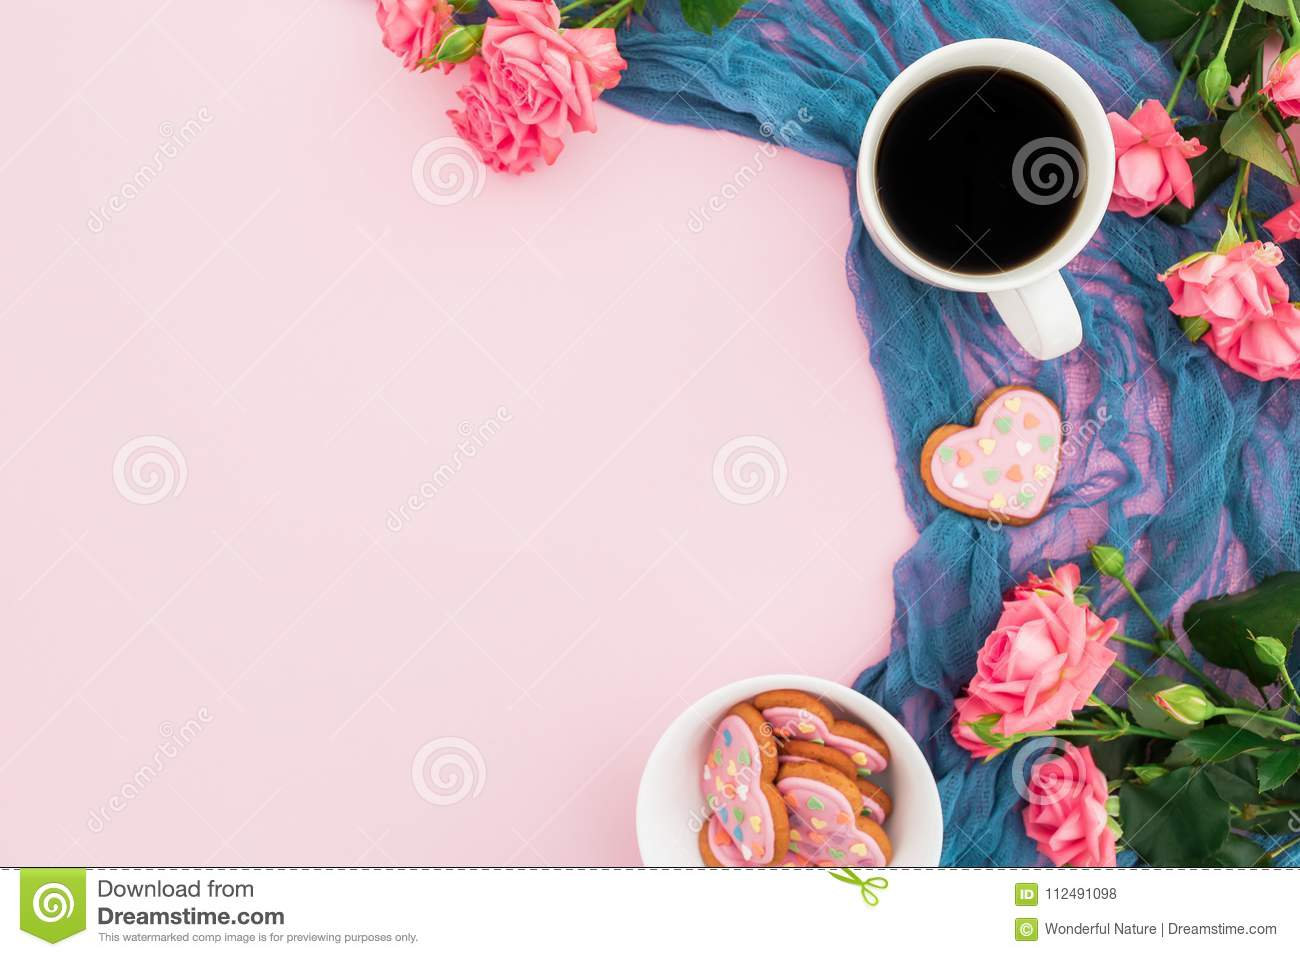 Composition With Roses Flowers Cookies And Cup Of Coffee On Pink